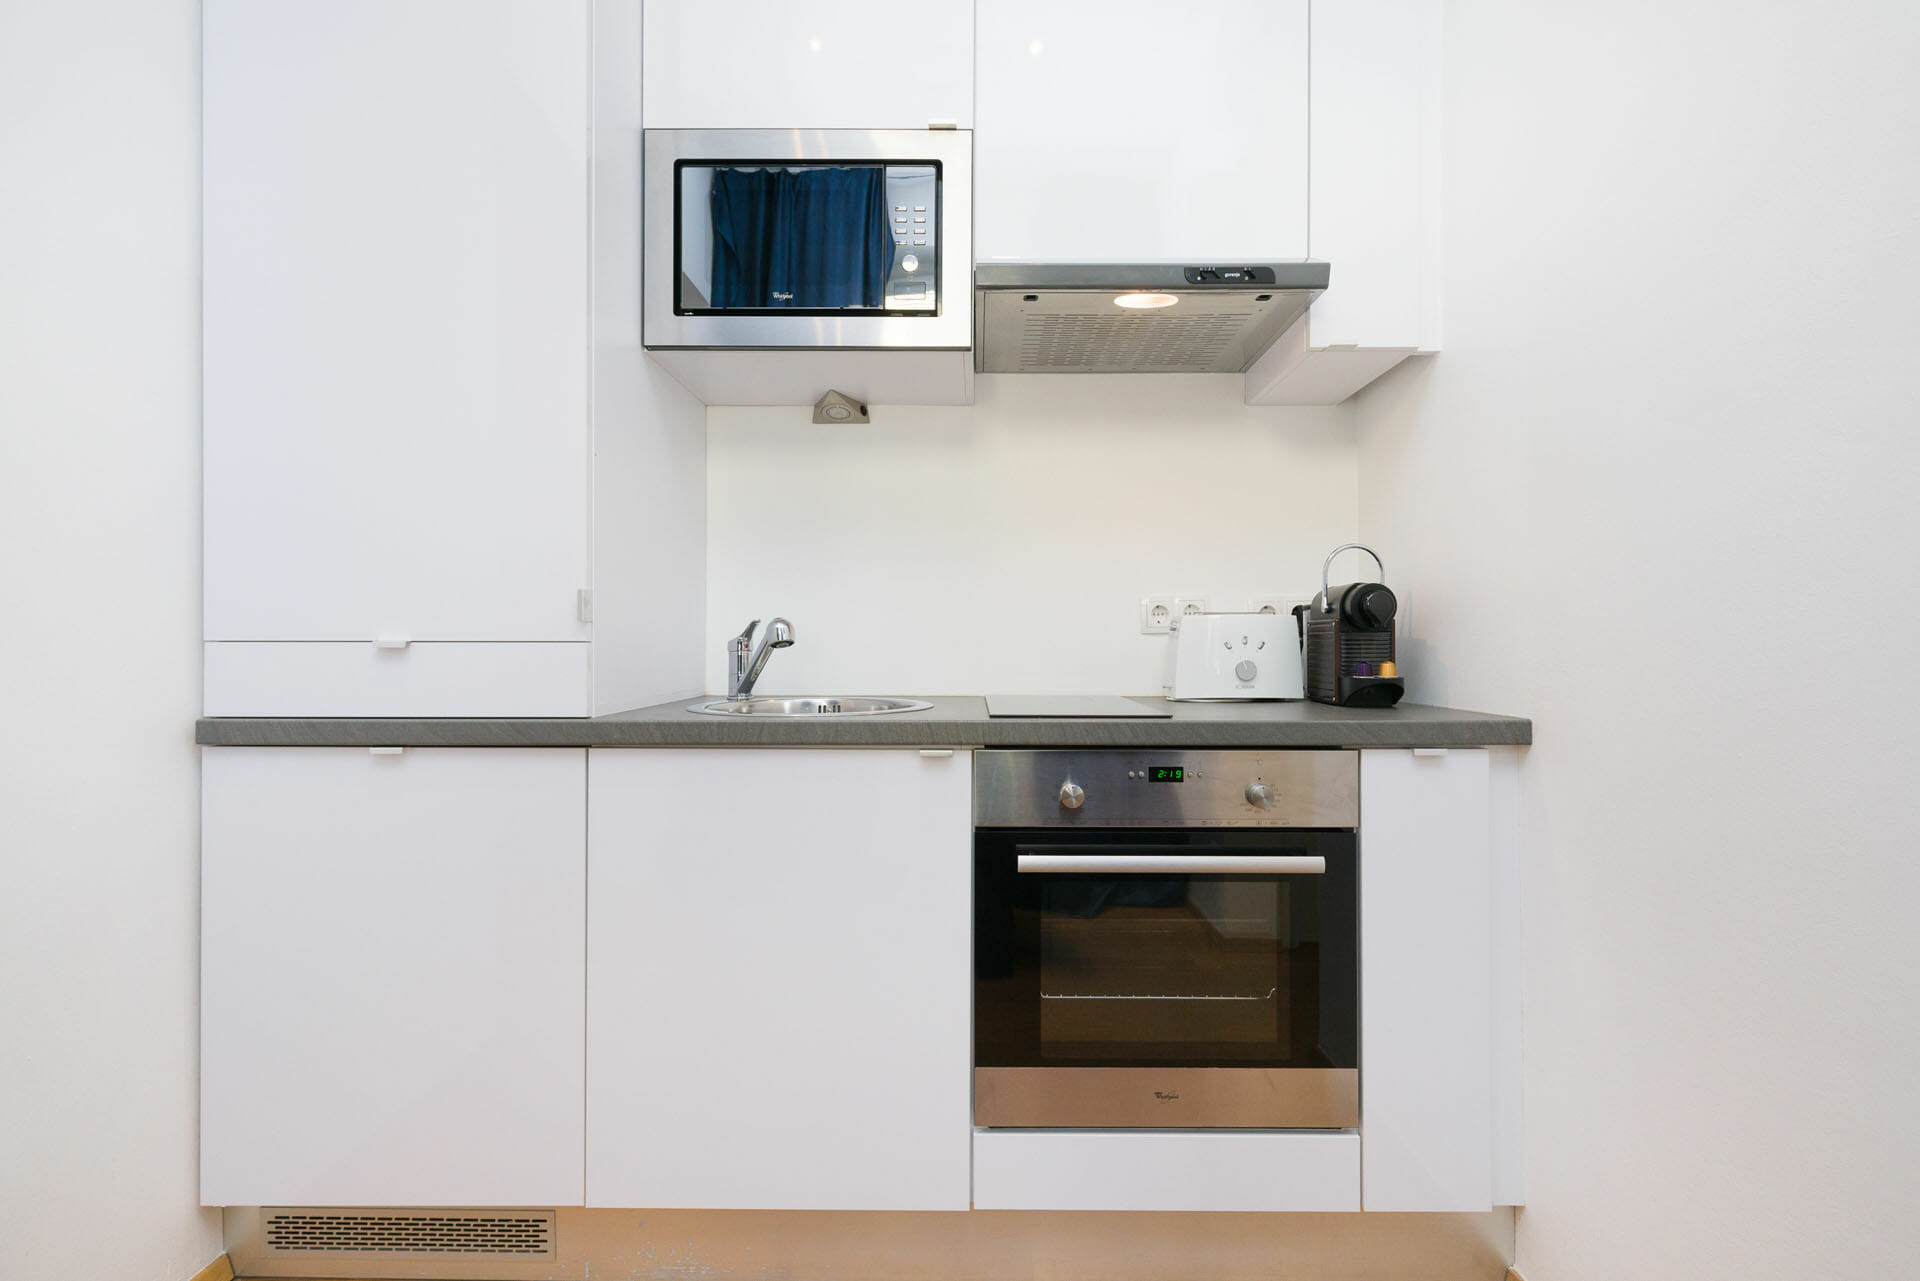 Prestige Apartments. Luxury Apartment in Vienna with premium furniture. Alser Strasse 14. Freezer, coffee machine, frying pan, cooking pot, Kitchenware, sofa bed, sofa, TV, double bed, lift, washing machine, vacuum cleaner, Internet, Digital Cable TV, Fully equipped kitchen